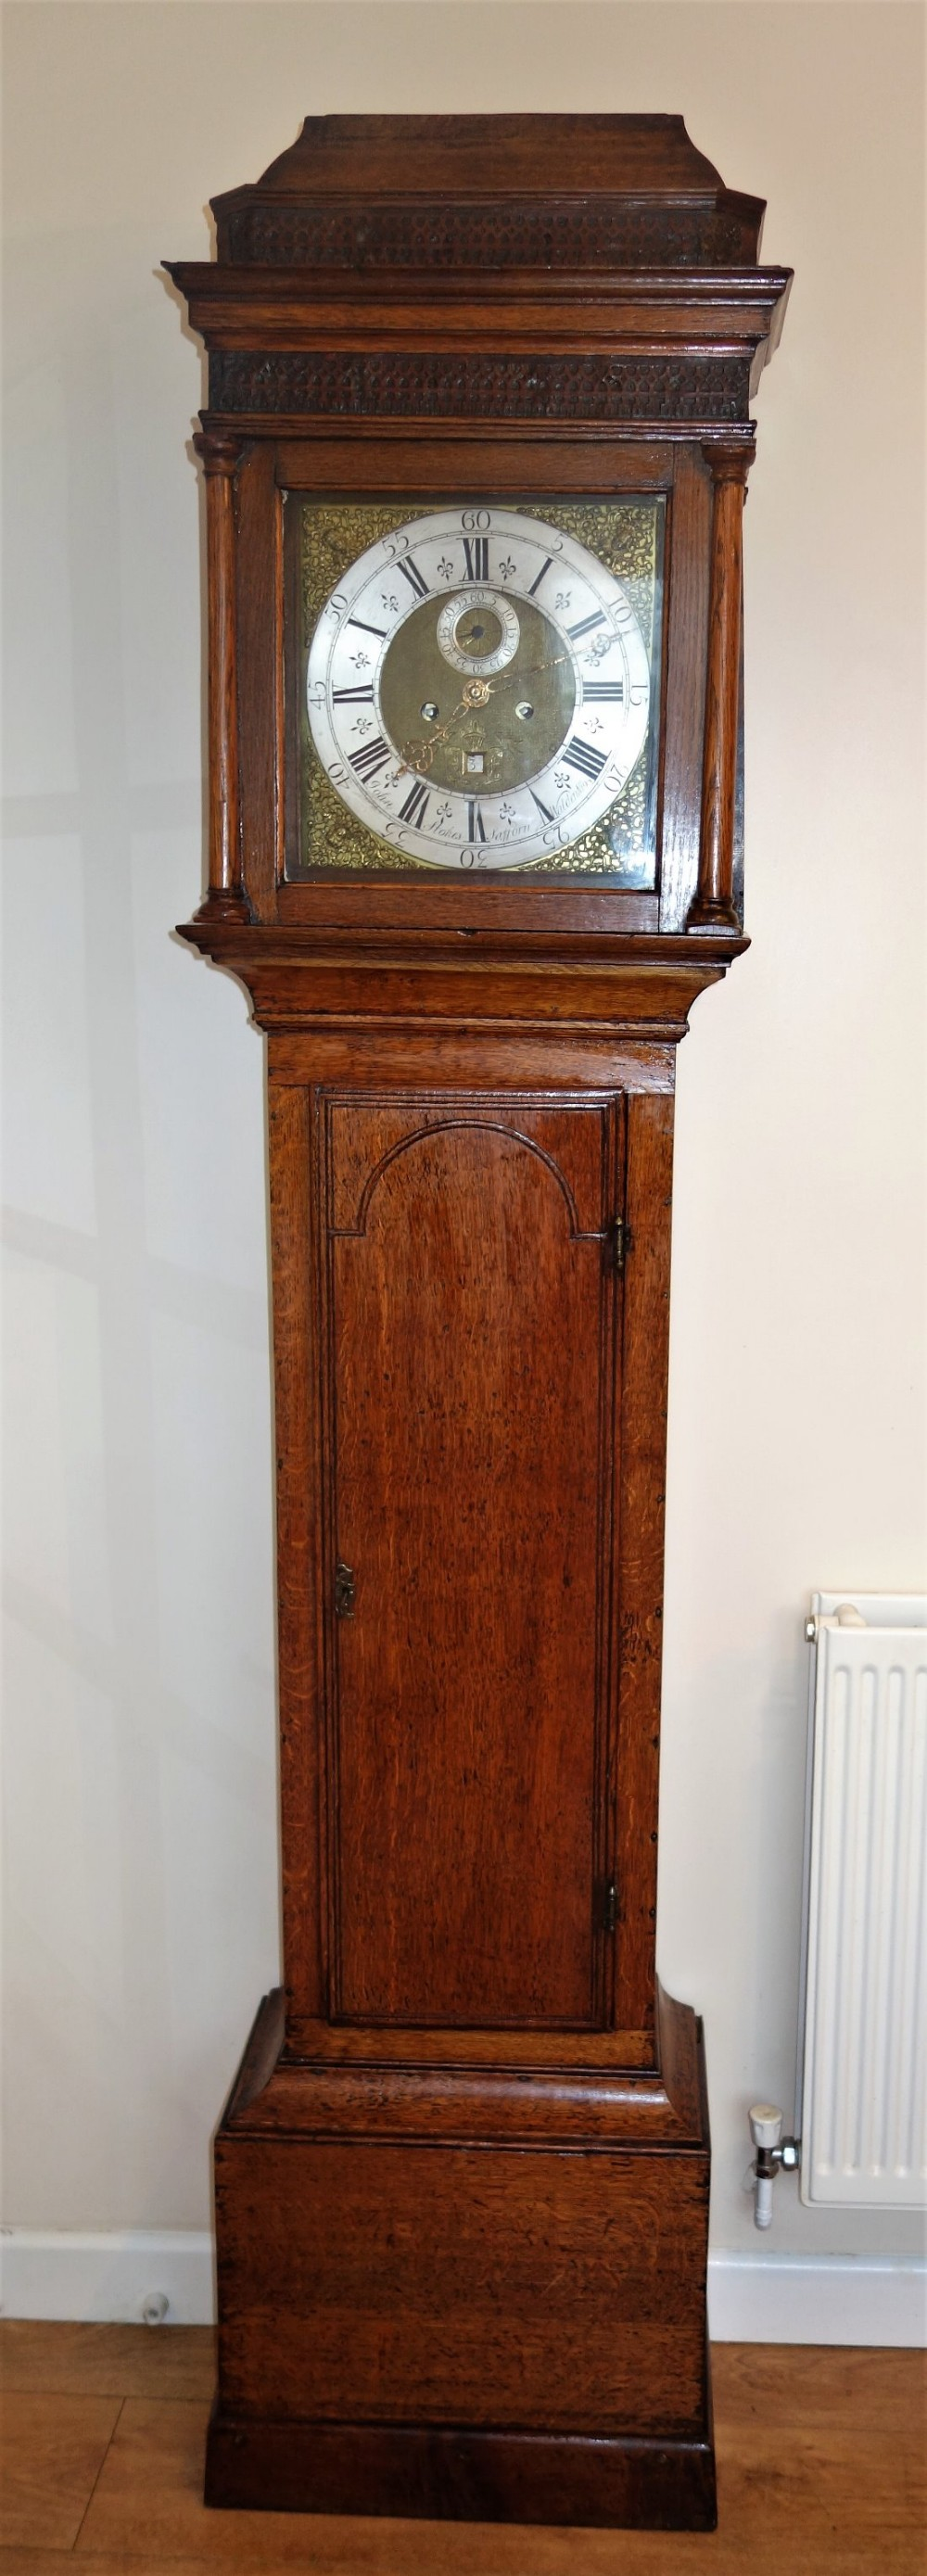 late 17th early 18th century charles ii james ii william mary anne to george i oak cased grandfather longcase clock no195